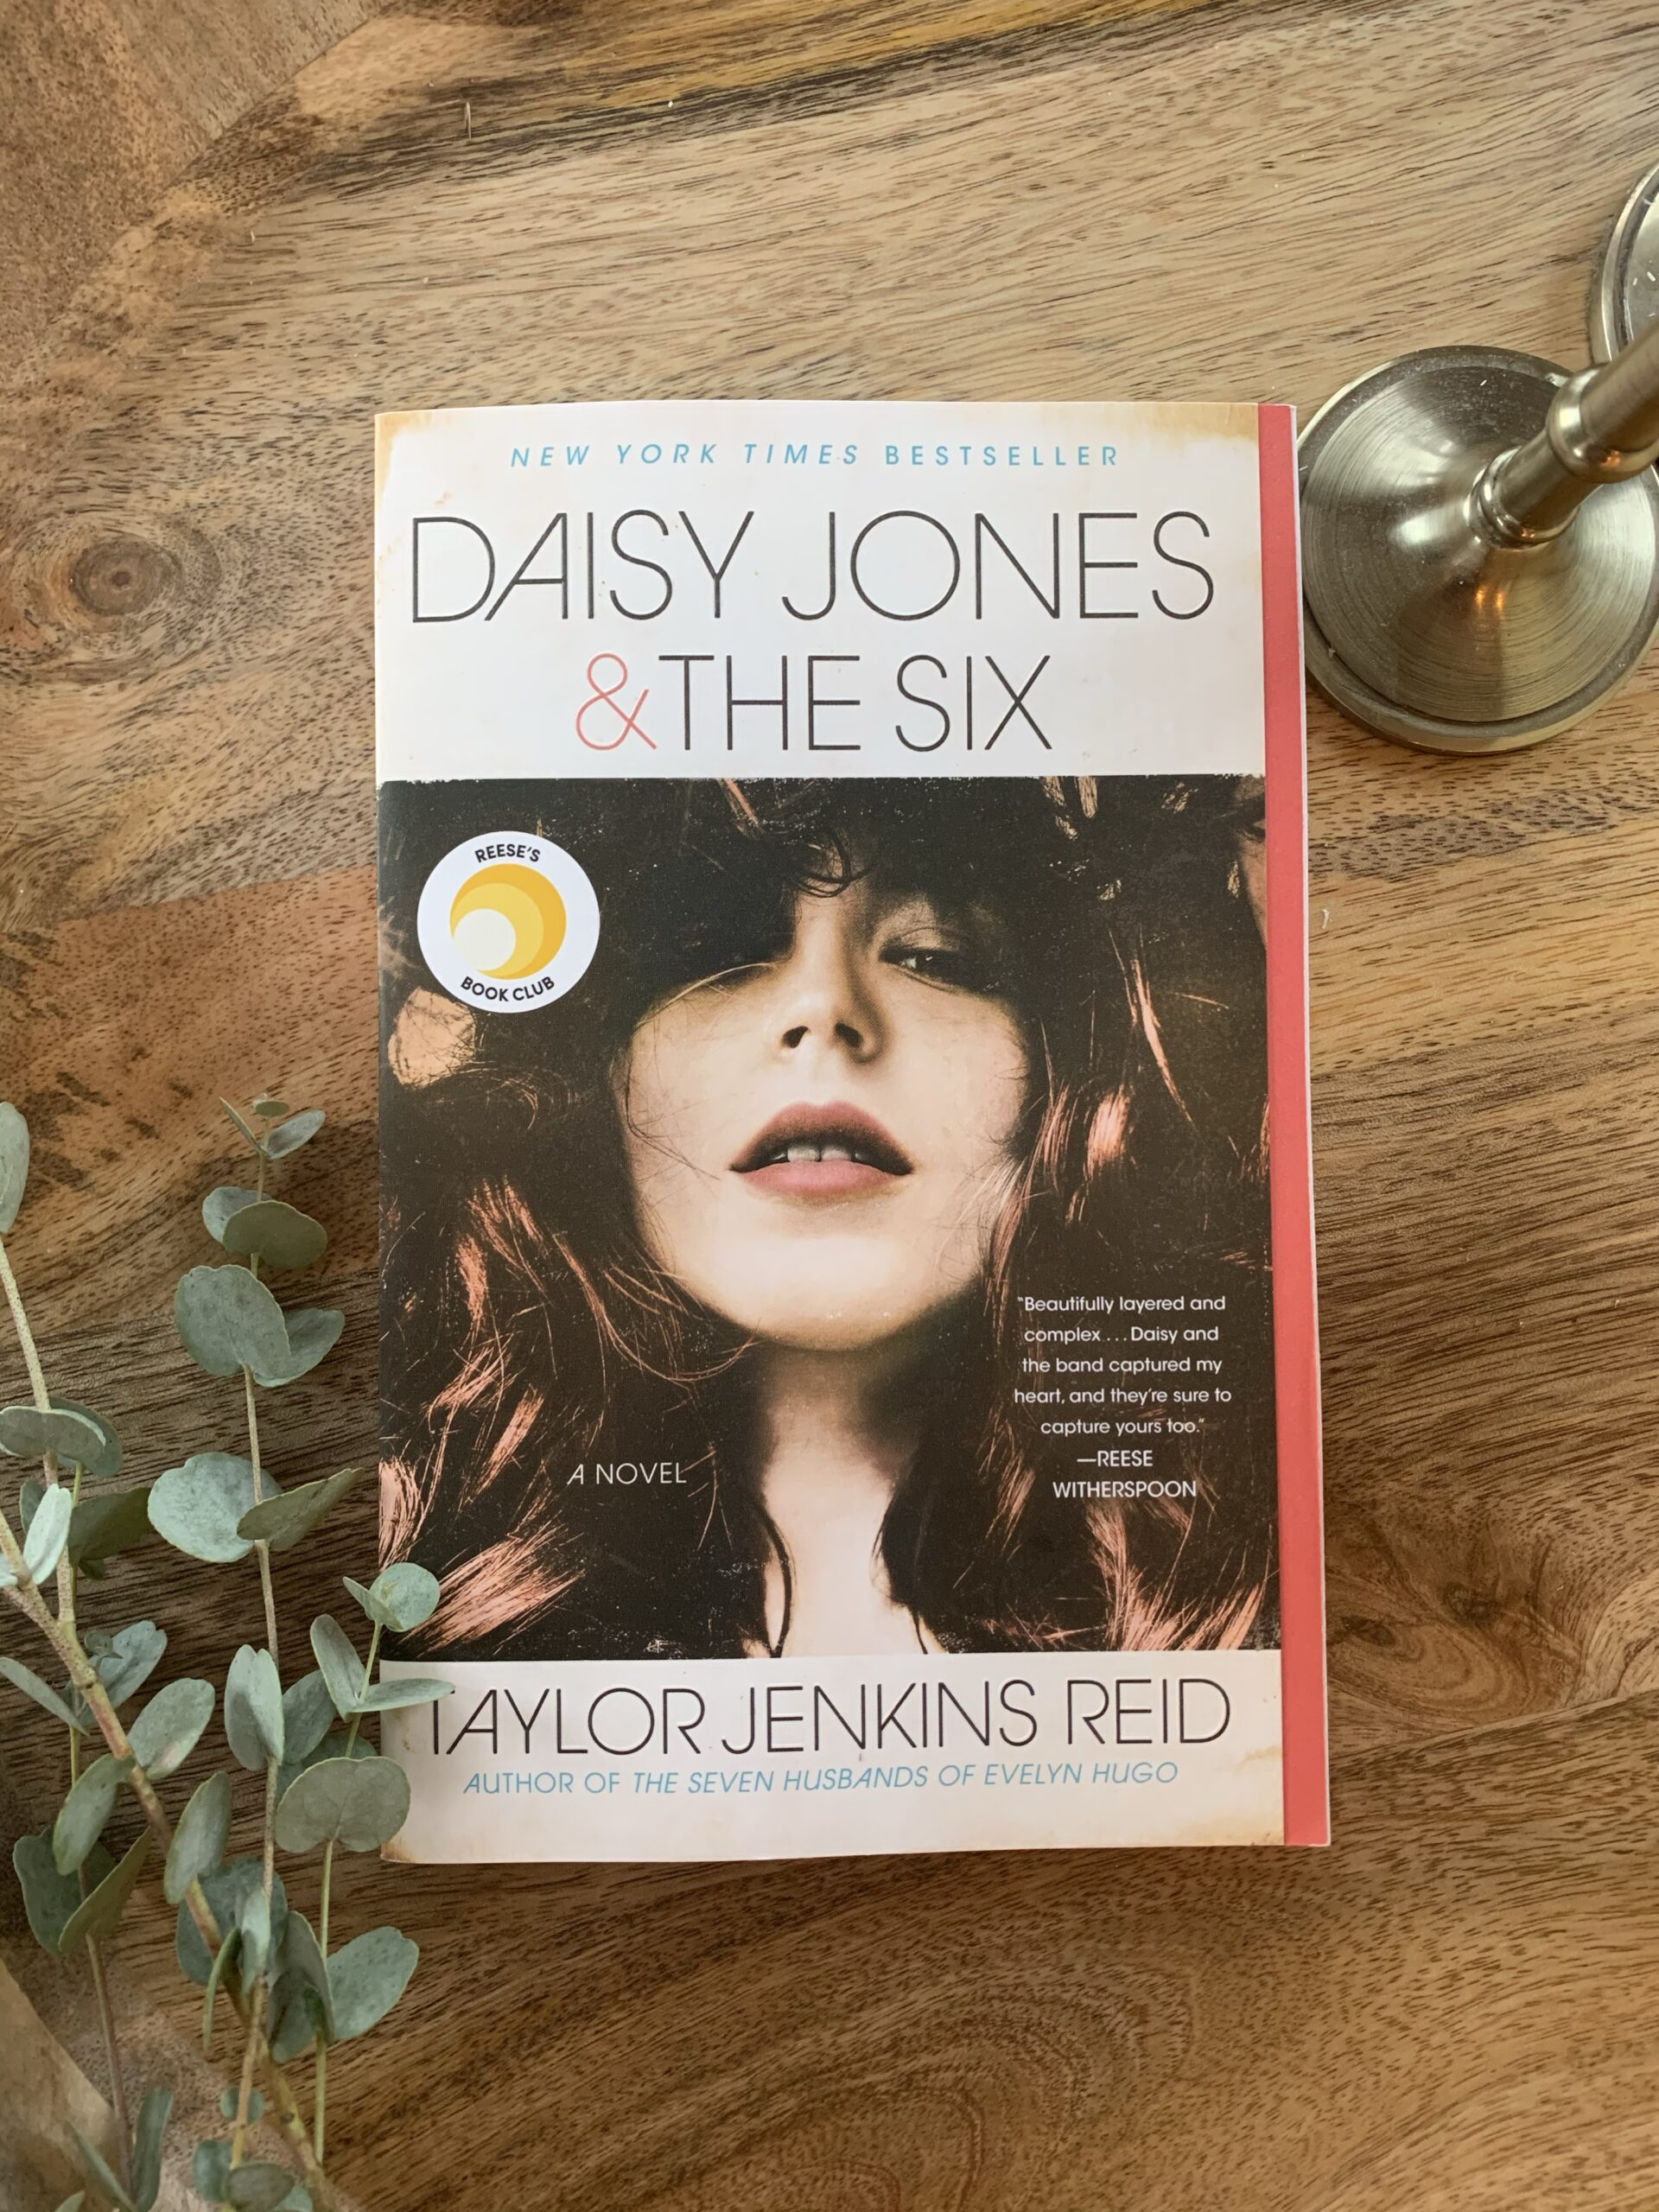 Image of the novel Daisy Jones and the Six, a novel by Taylor Jenkins Reid. Book with image of rock star sits on a wooden tray.